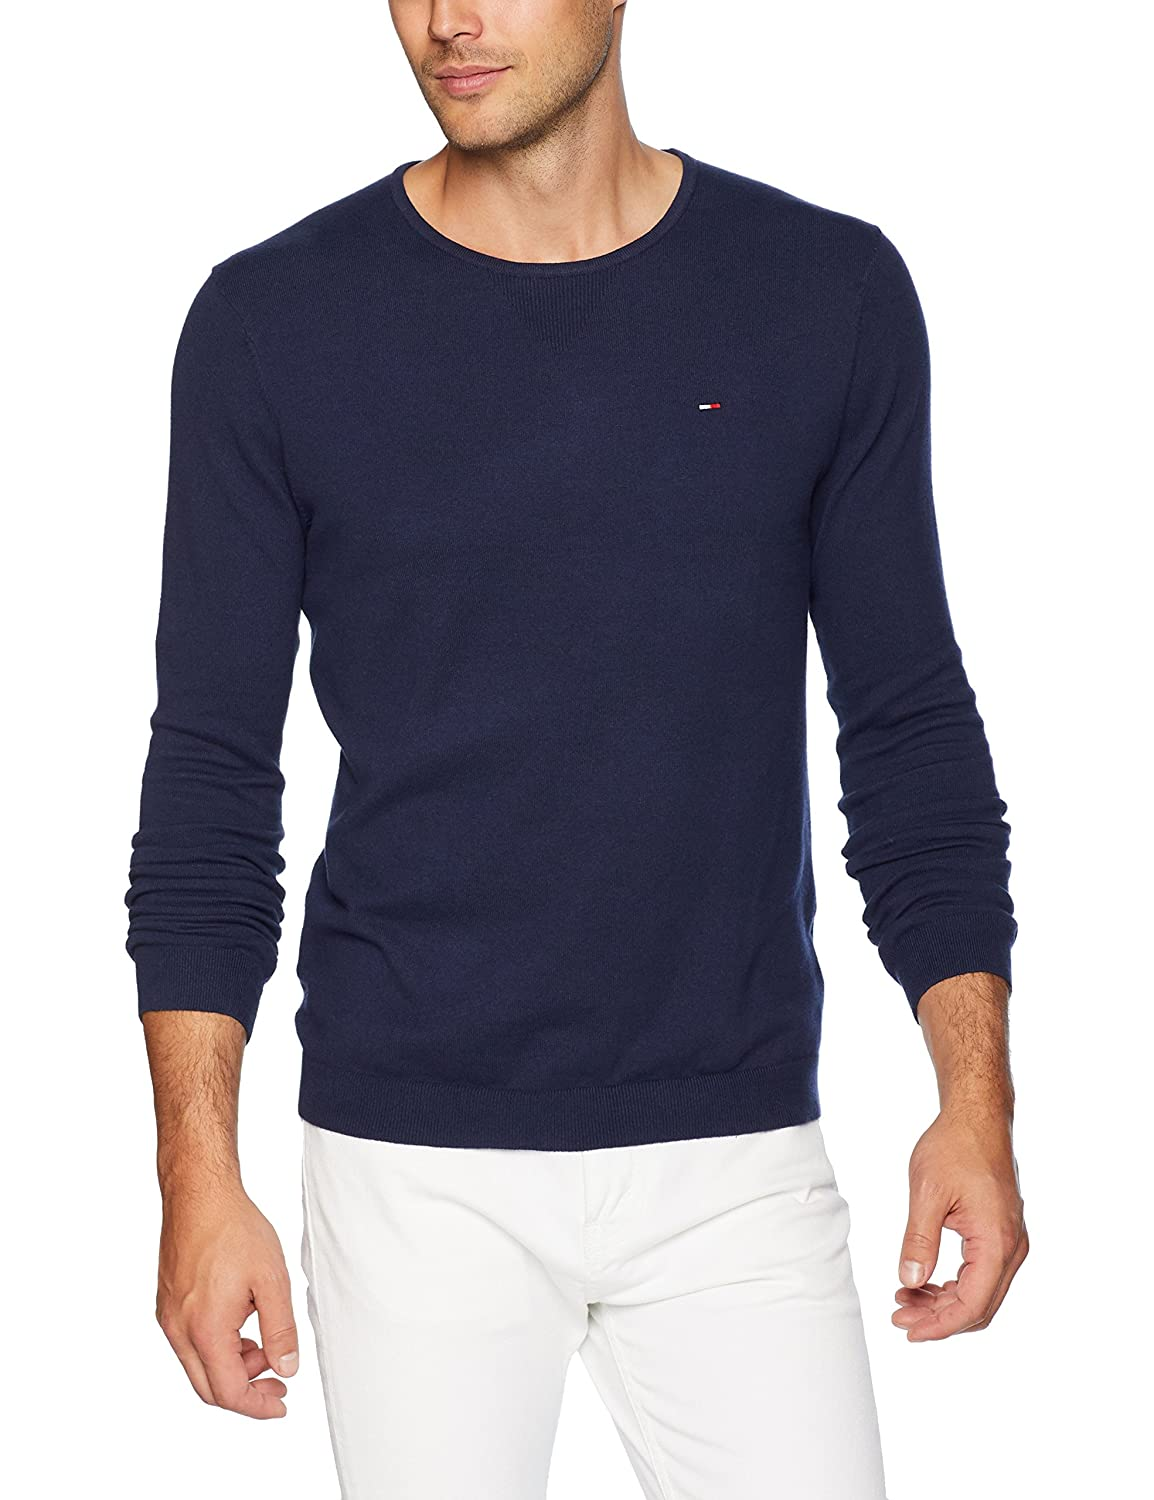 Højmoderne Tommy Hilfiger Men's Sweater Original Crew Neck at Amazon Men's YR-56